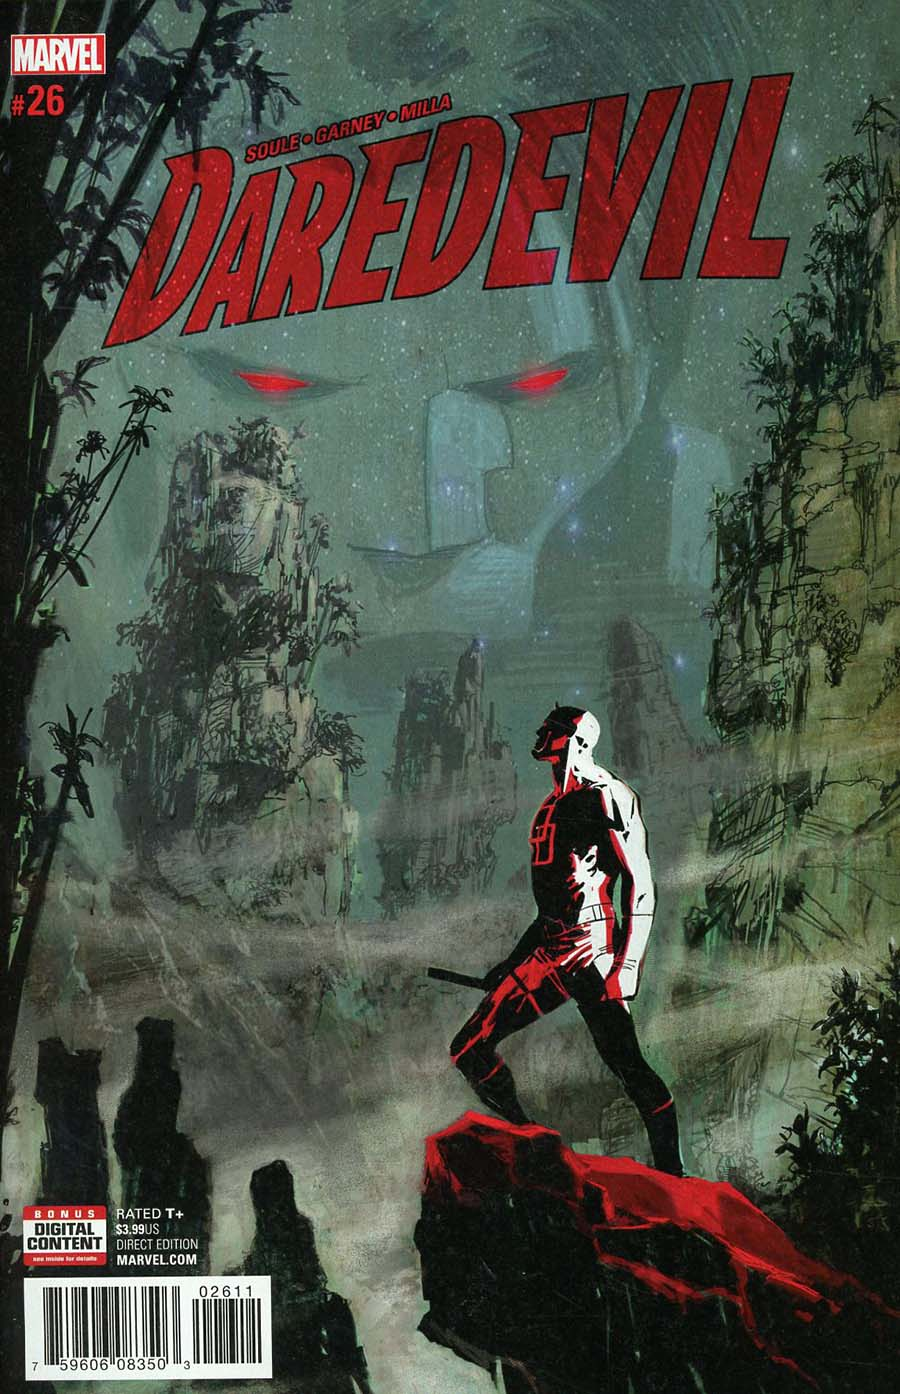 Daredevil Vol 5 #26 Cover A Regular Ron Garney Cover